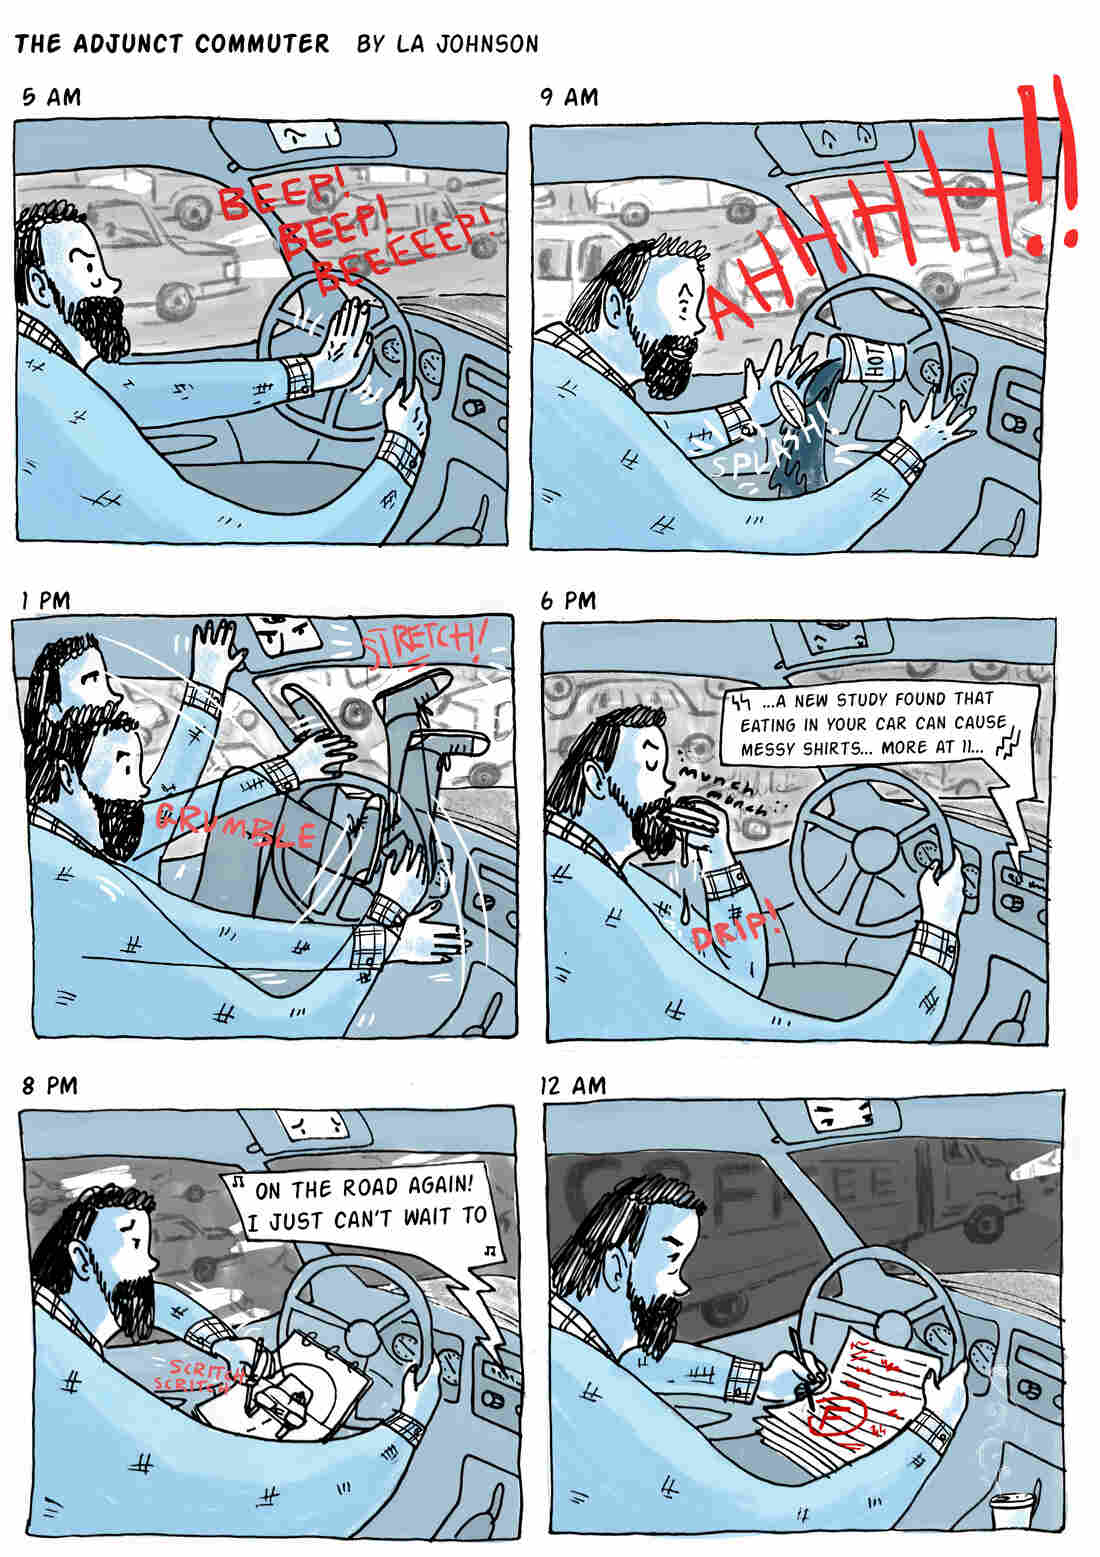 The Adjunct Commuter comic